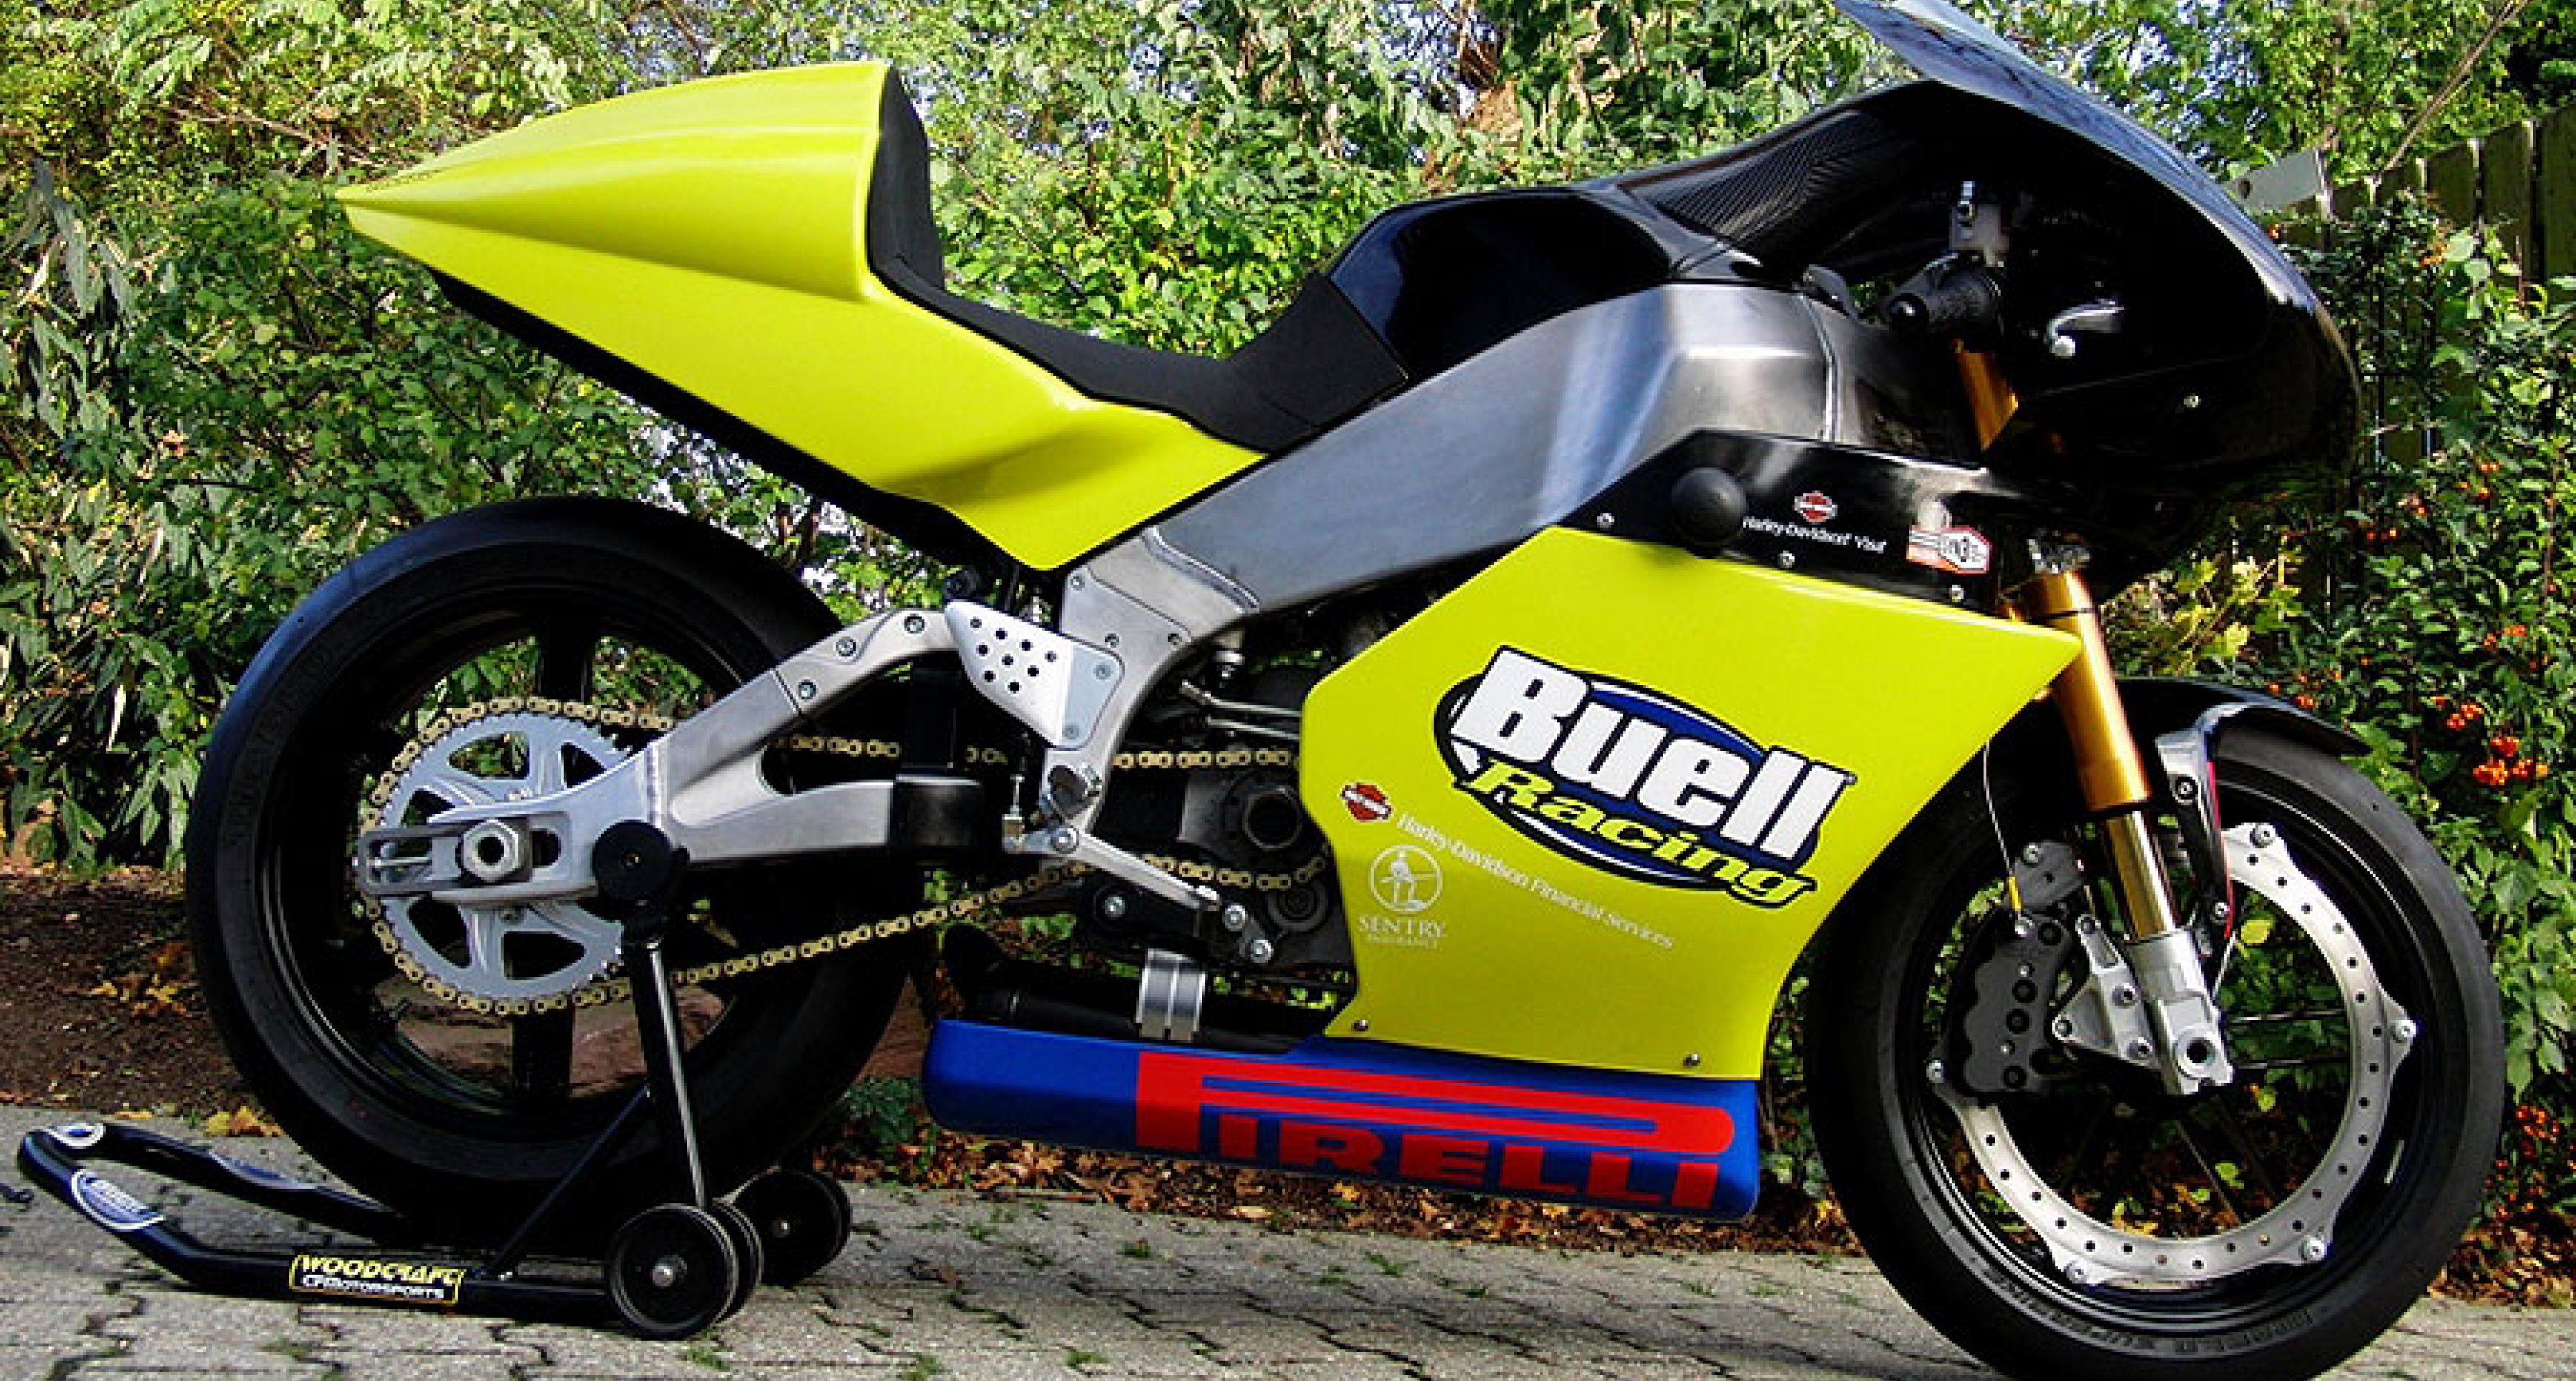 Buell XBRR Factory Racer: Two-wheeled beast